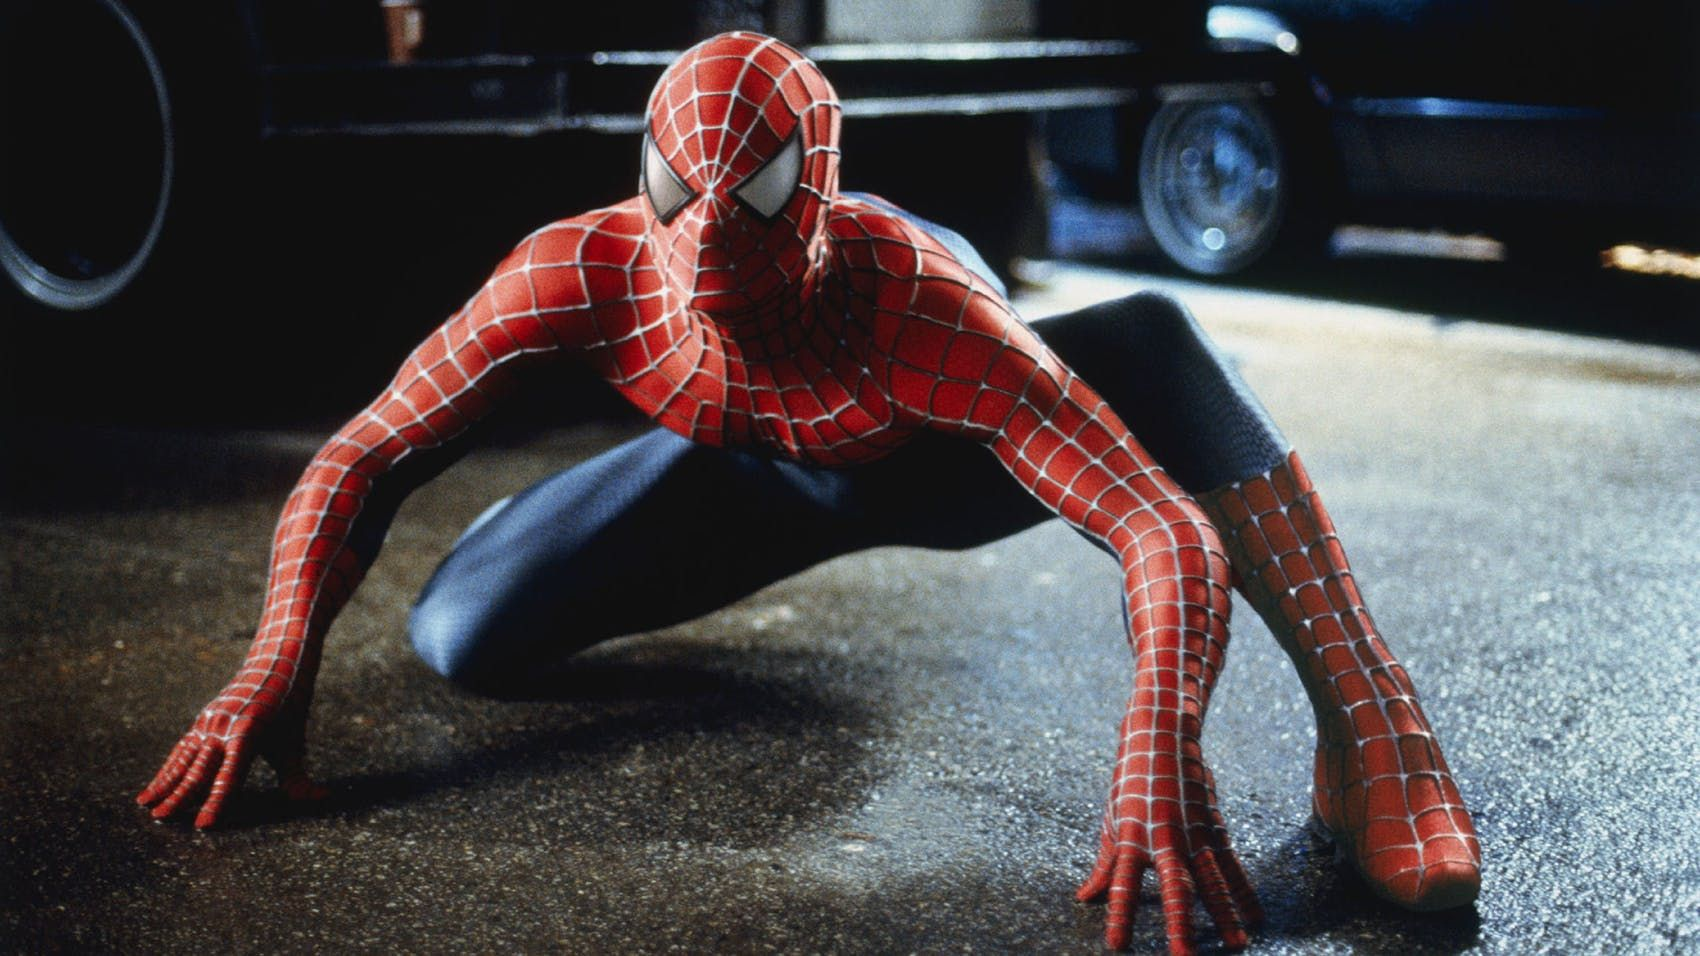 Tobey Maguire in Spider-Man (2002)